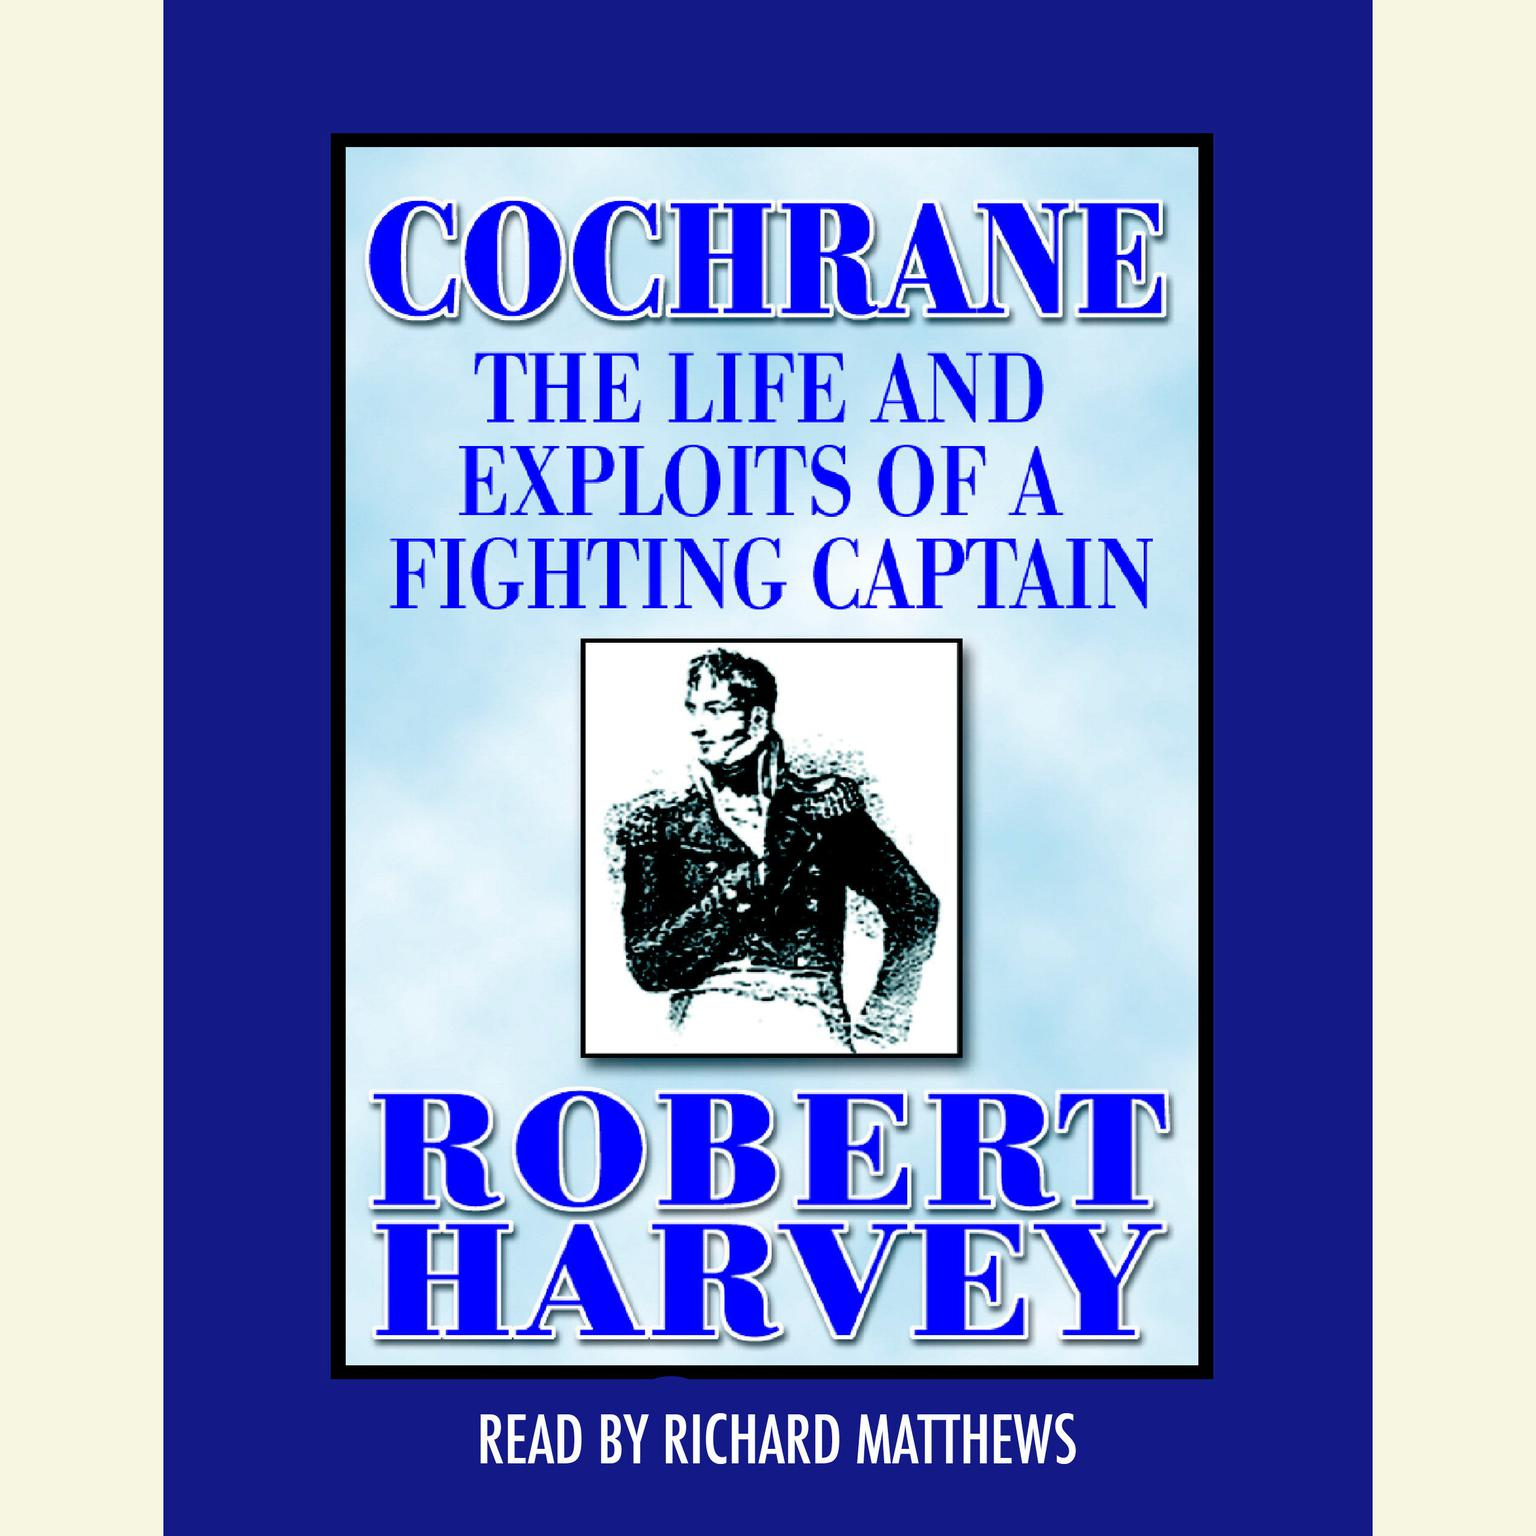 Printable Cochrane: The Life and Exploits of a Fighting Captain Audiobook Cover Art